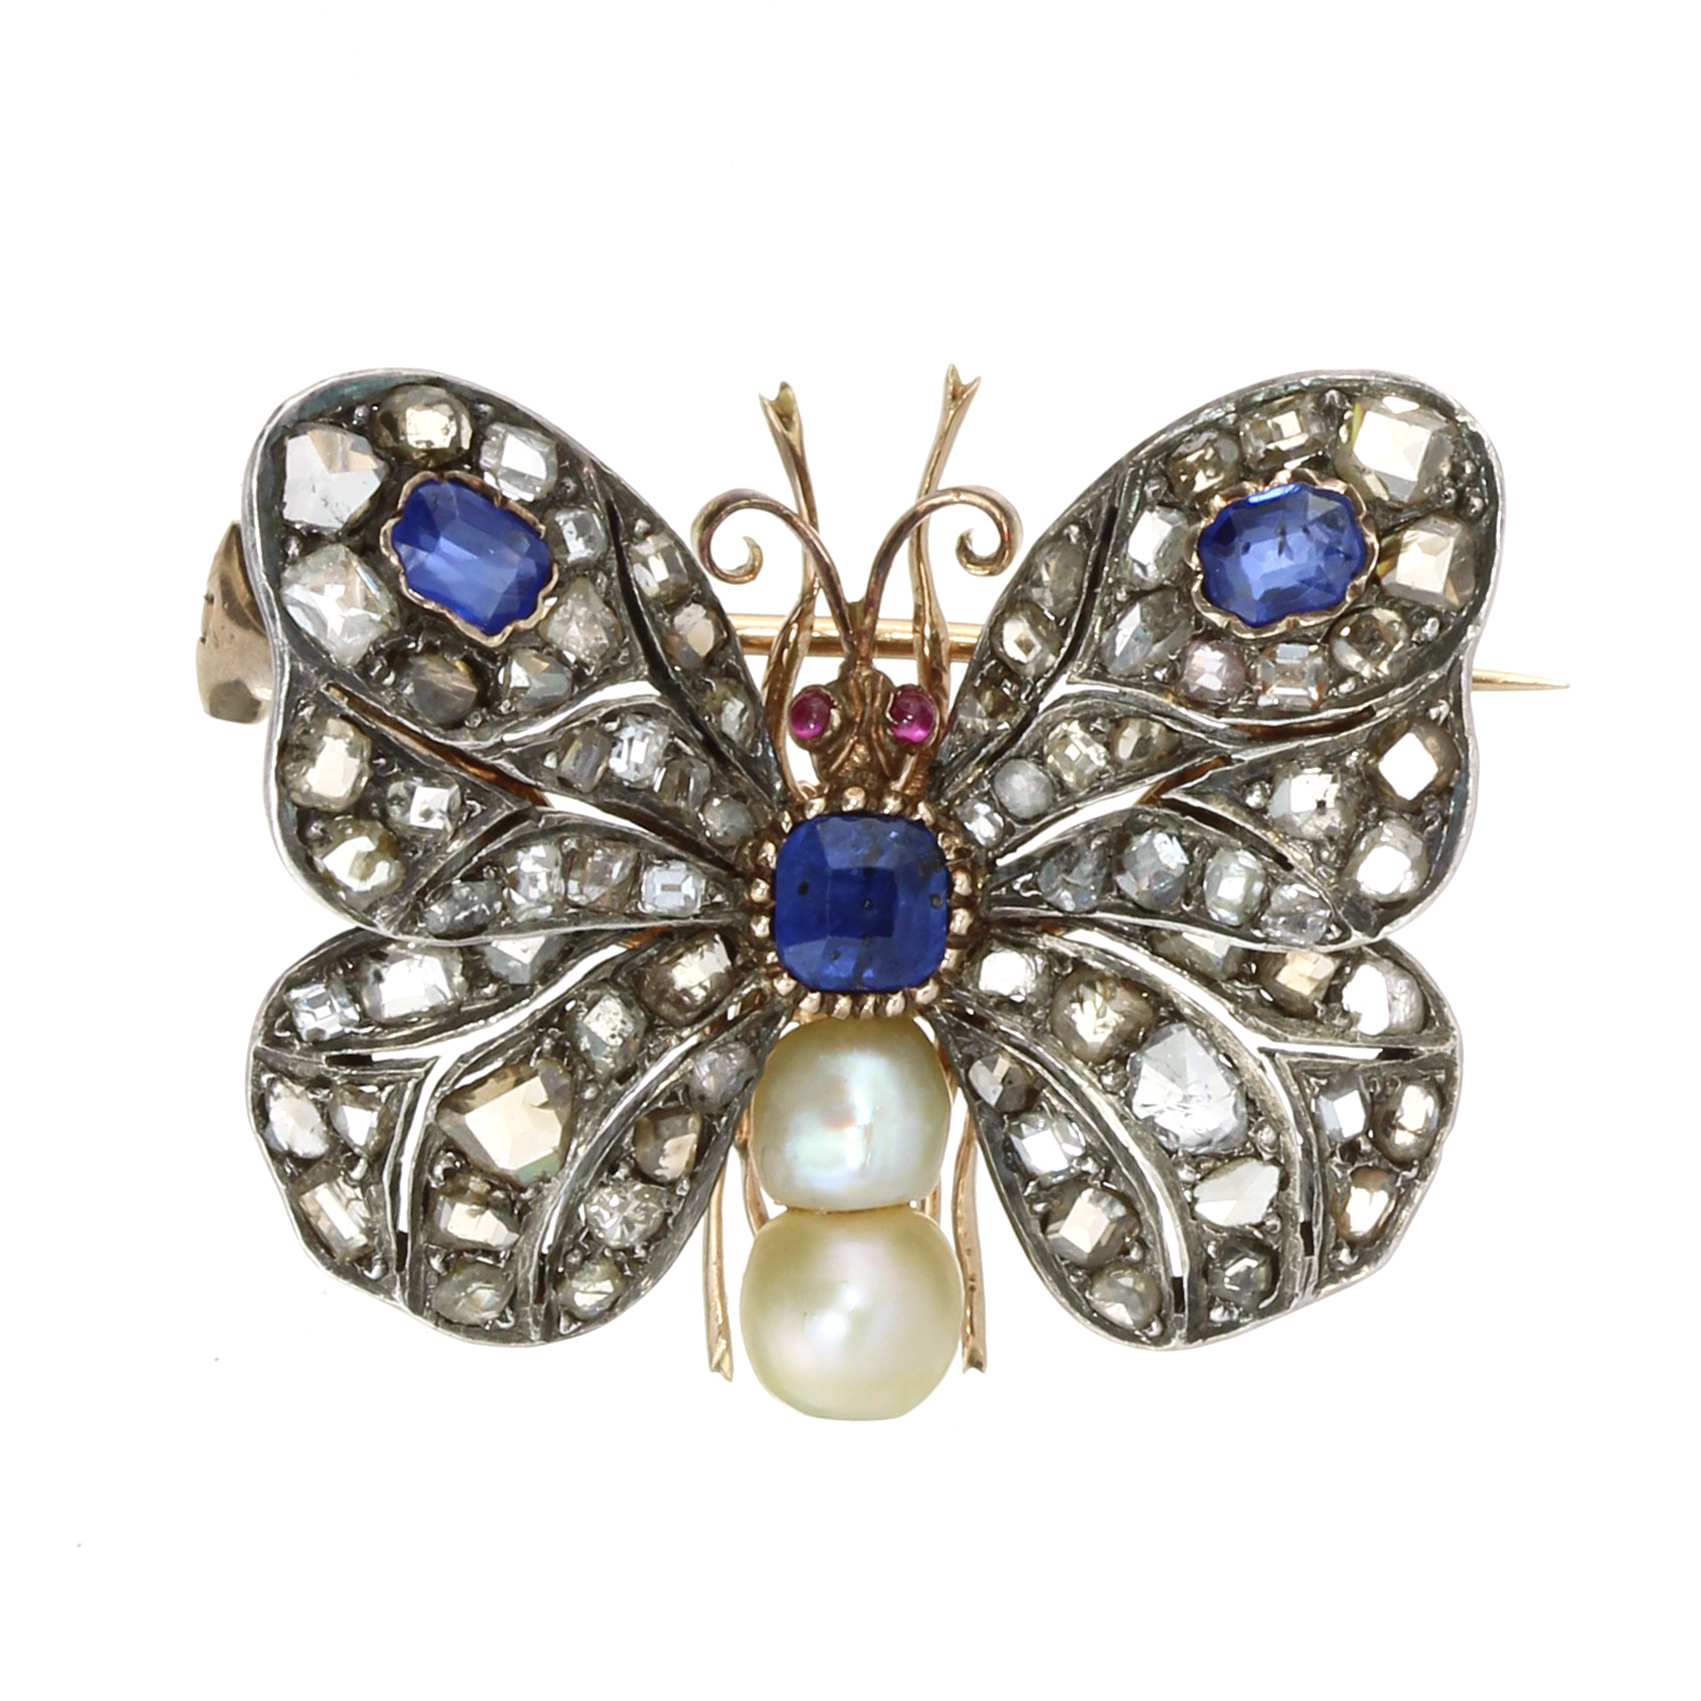 Los 45 - AN ANTIQUE SAPPHIRE, PEARL, RUBY AND DIAMOND BUTTERFLY BROOCH in high carat gold and silver, in